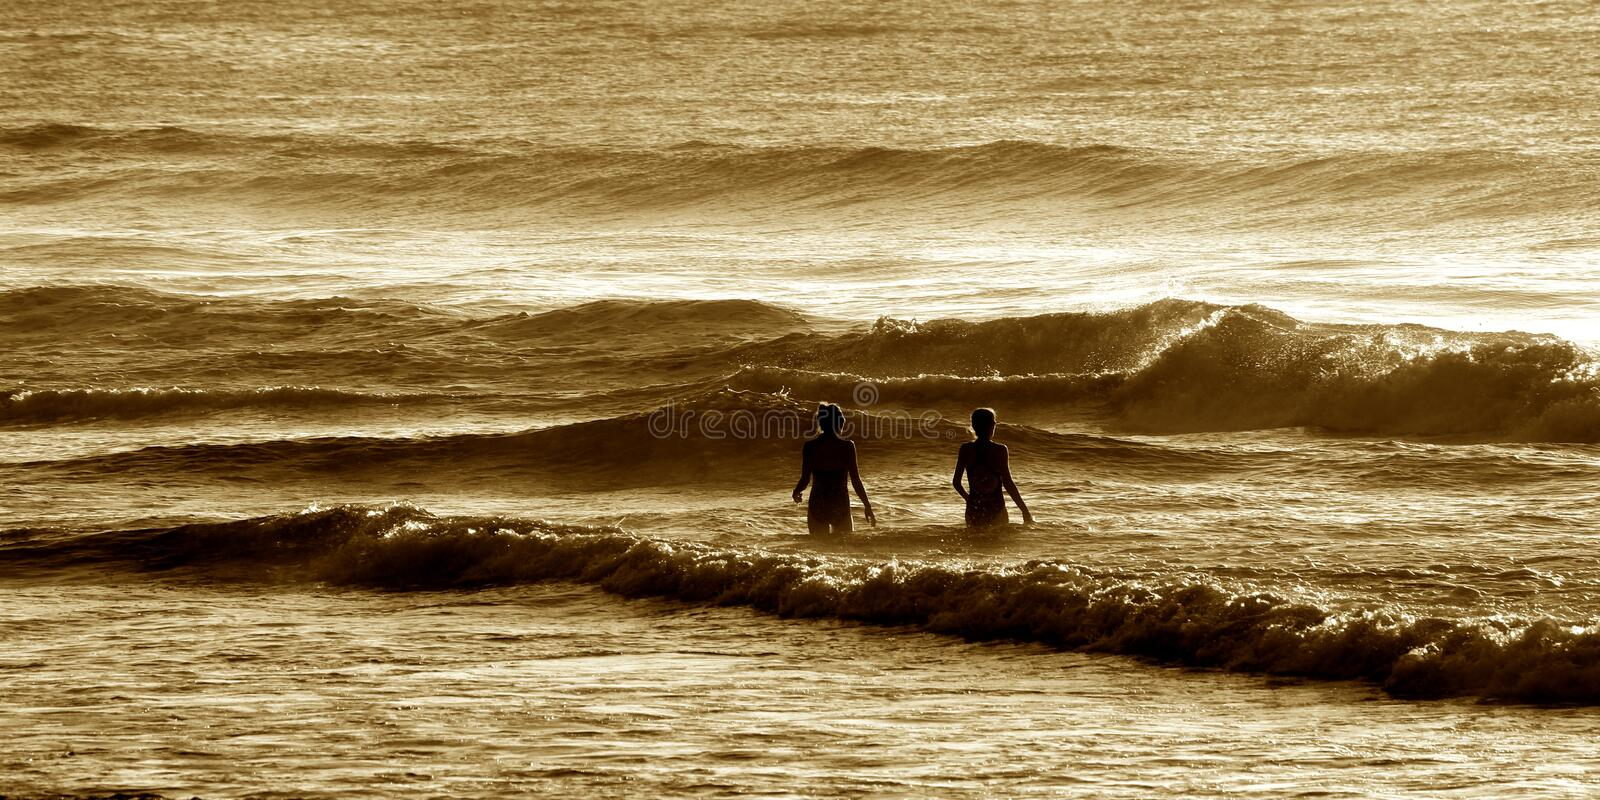 Braving the early morning sea royalty free stock photos